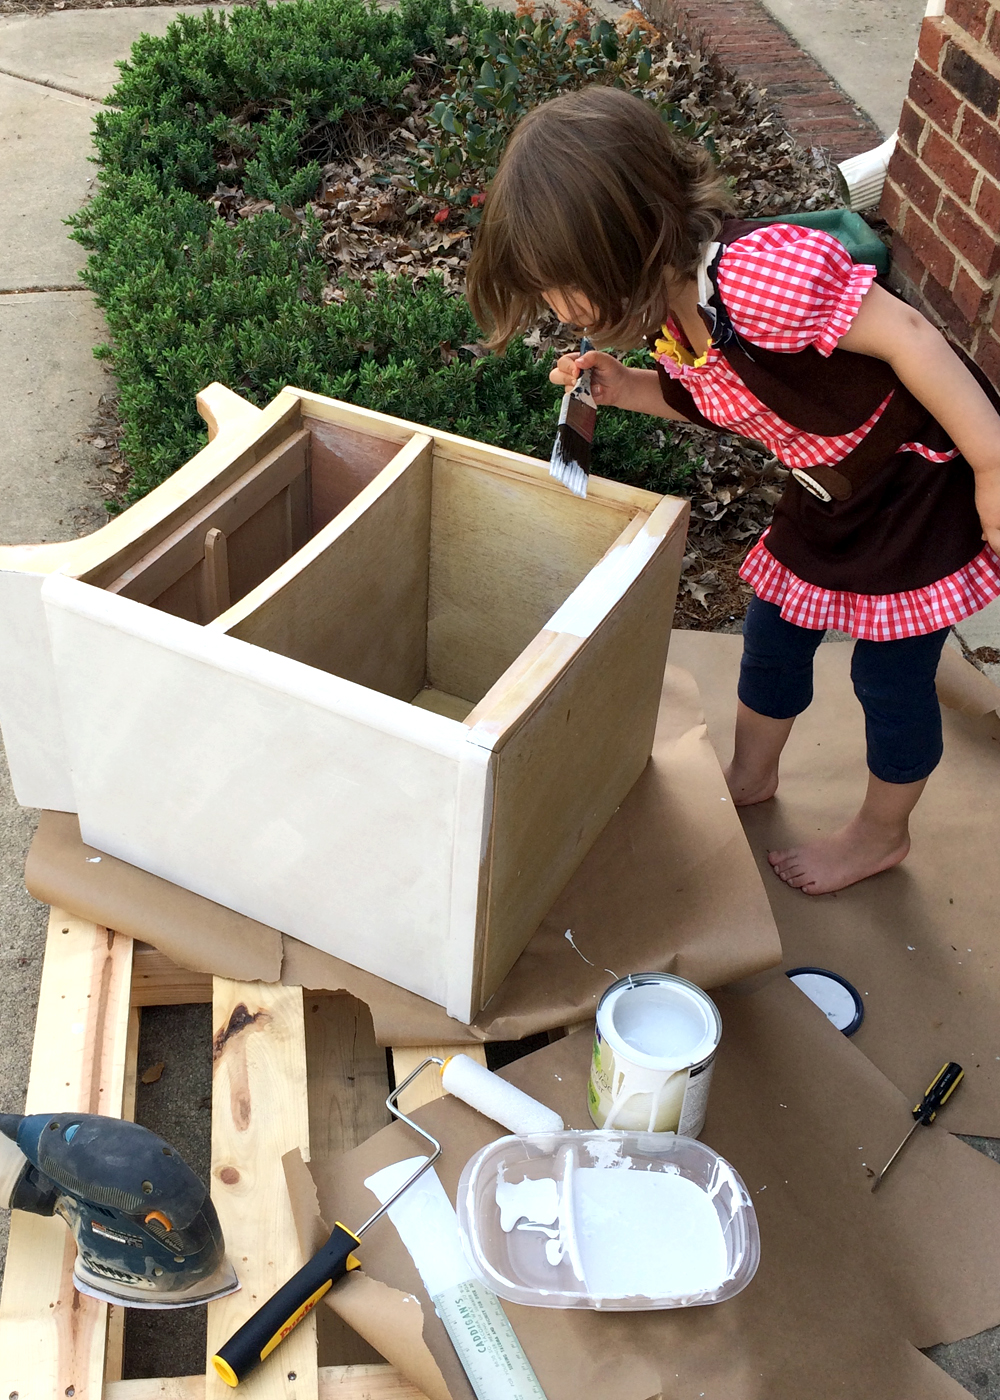 5 Reasons Why Kids Should Work on DIY Projects